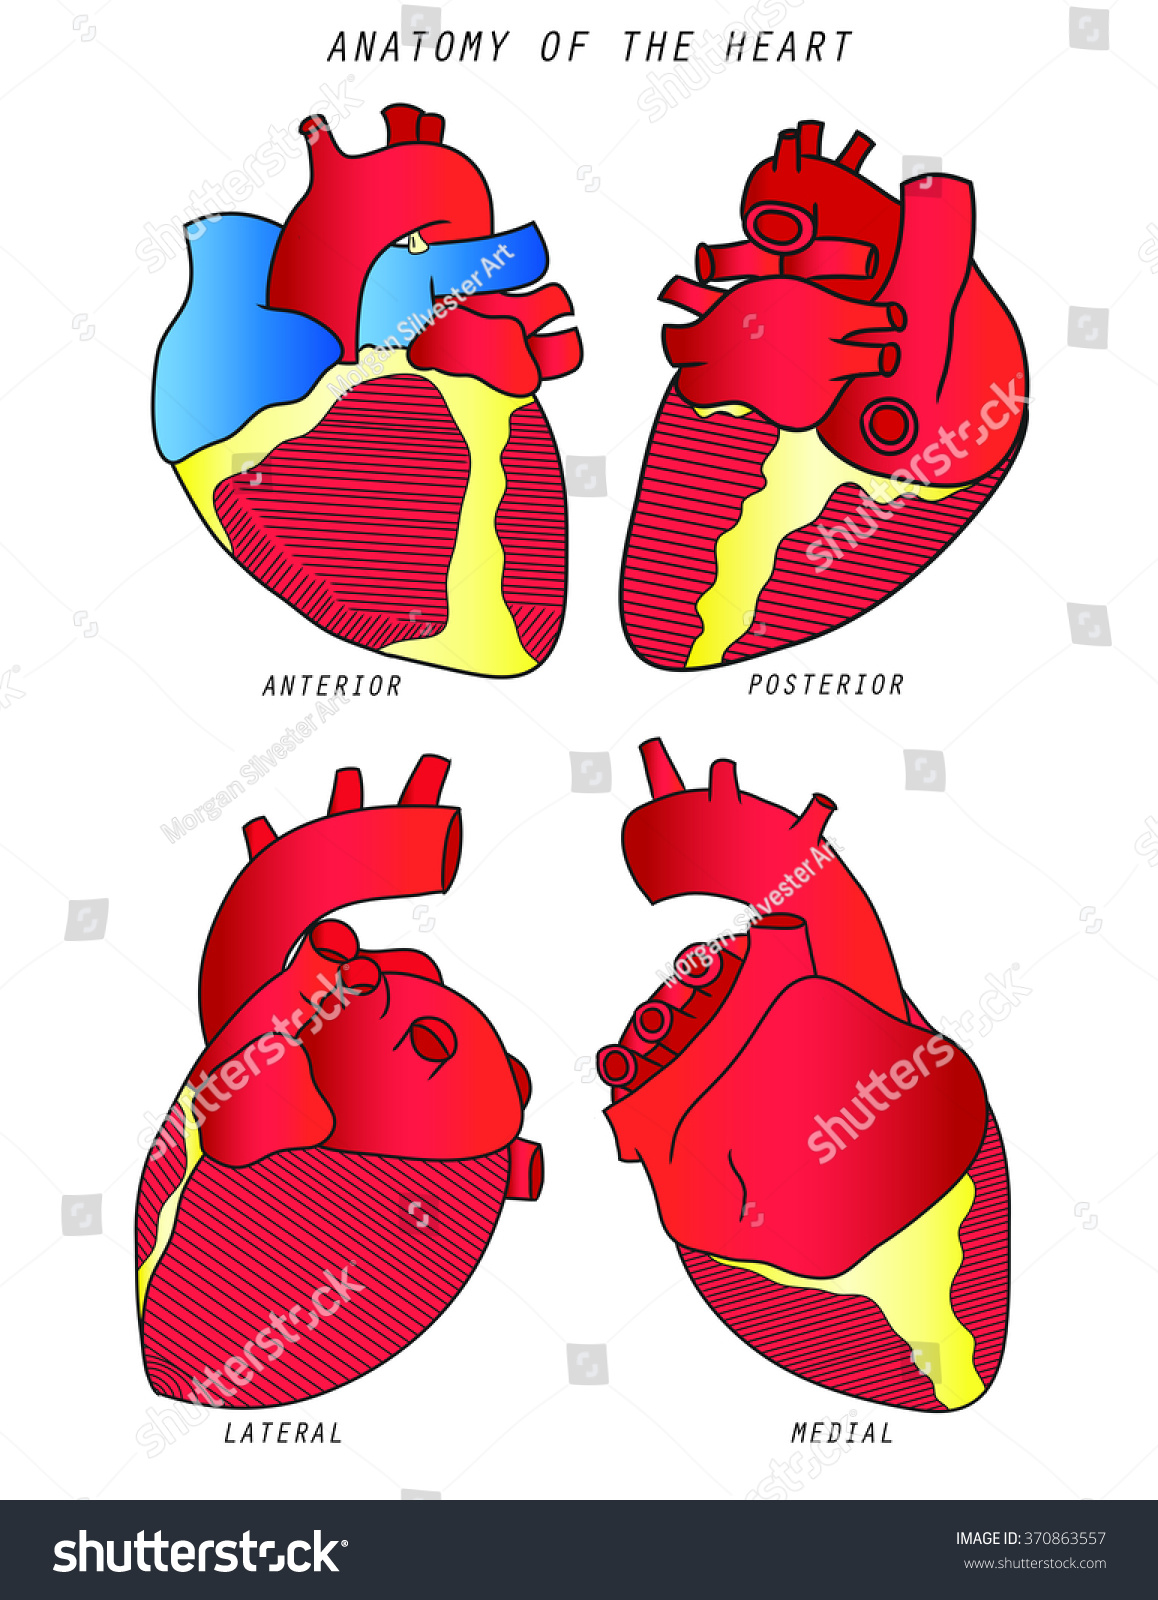 Anatomy Heart Poster Text Stock Illustration 370863557 - Shutterstock